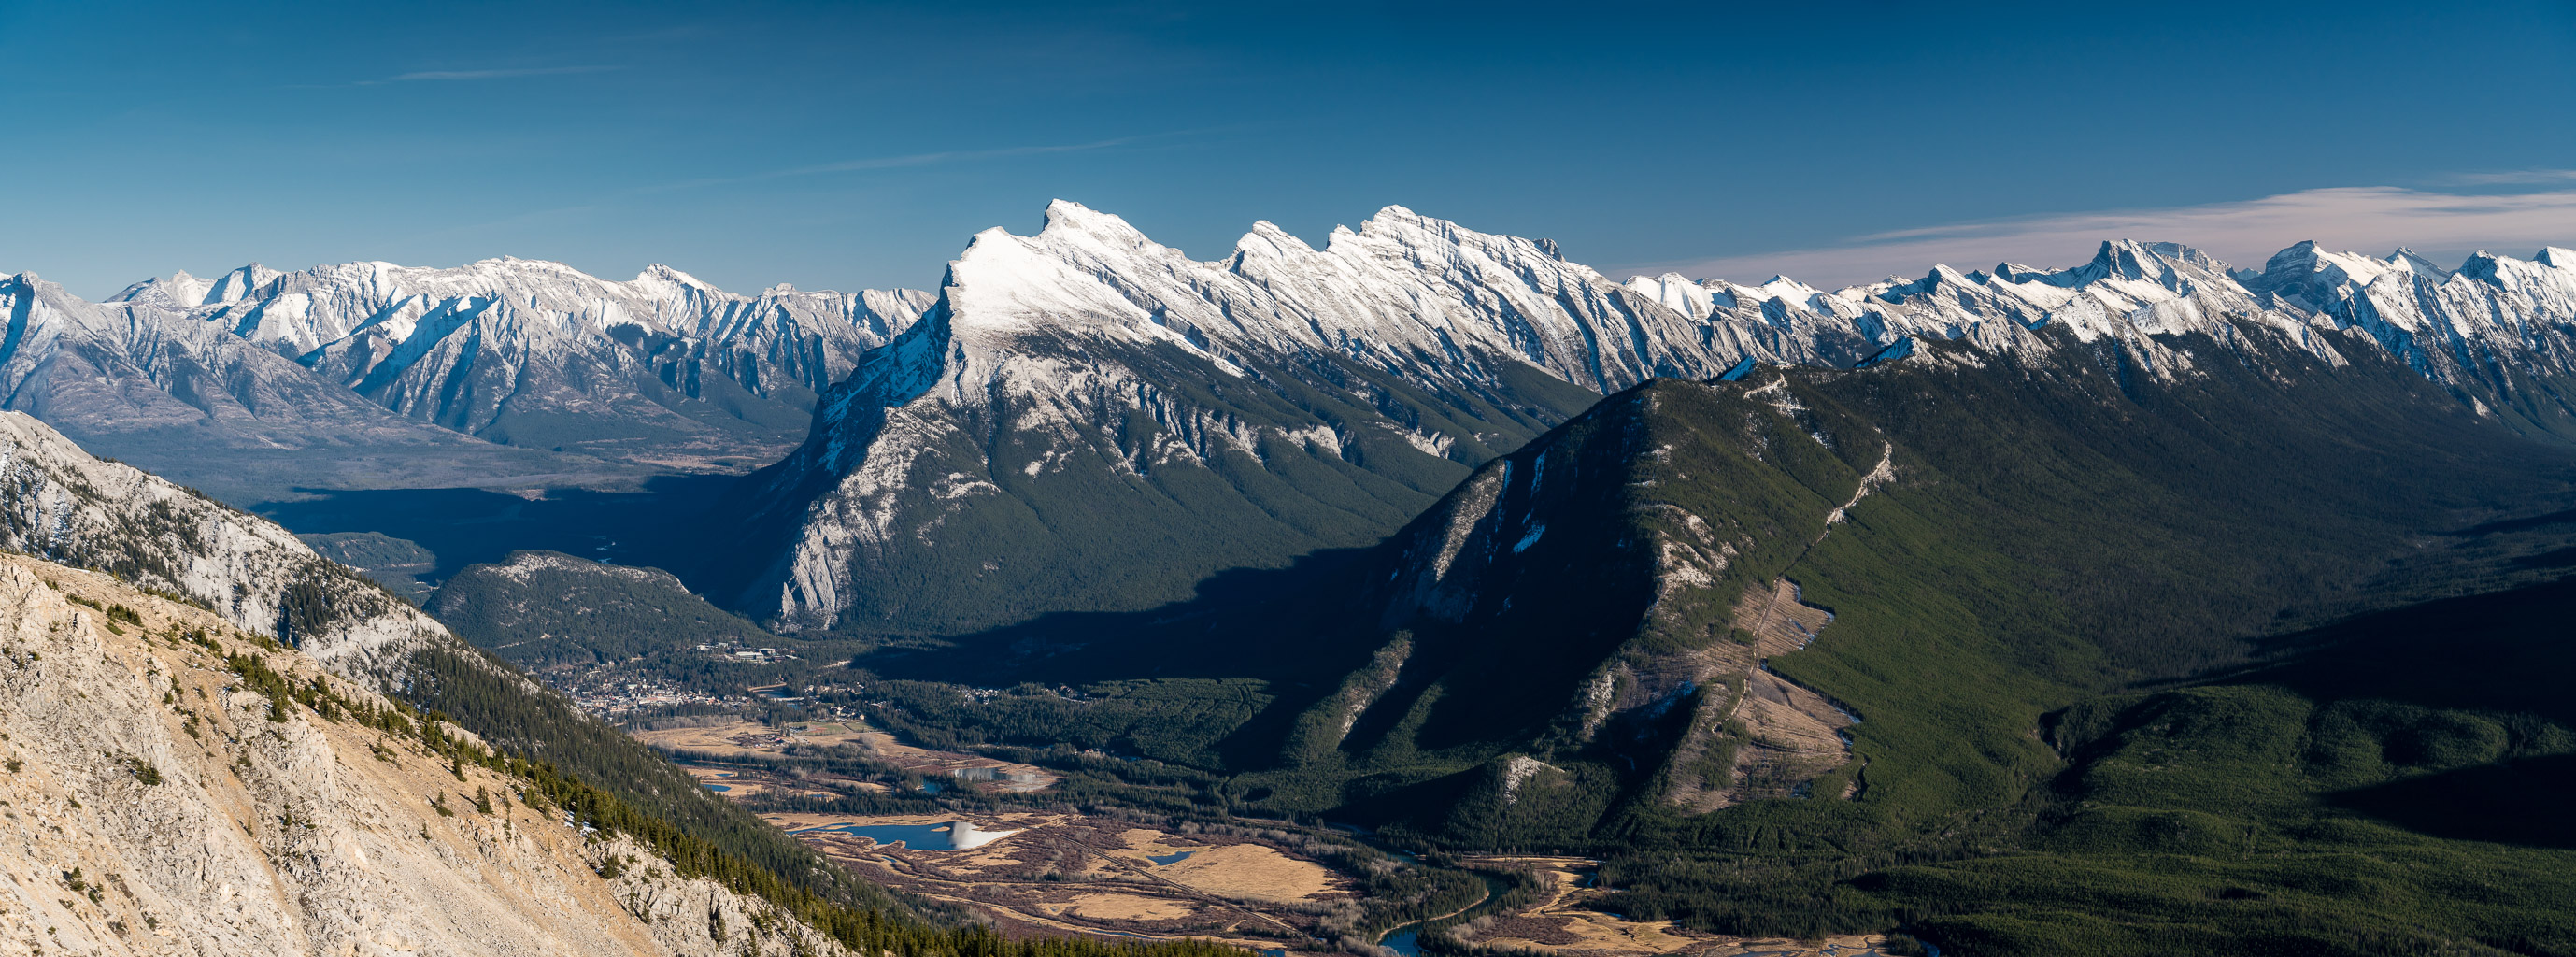 Gorgeous views over Banff towards Mount Rundle.